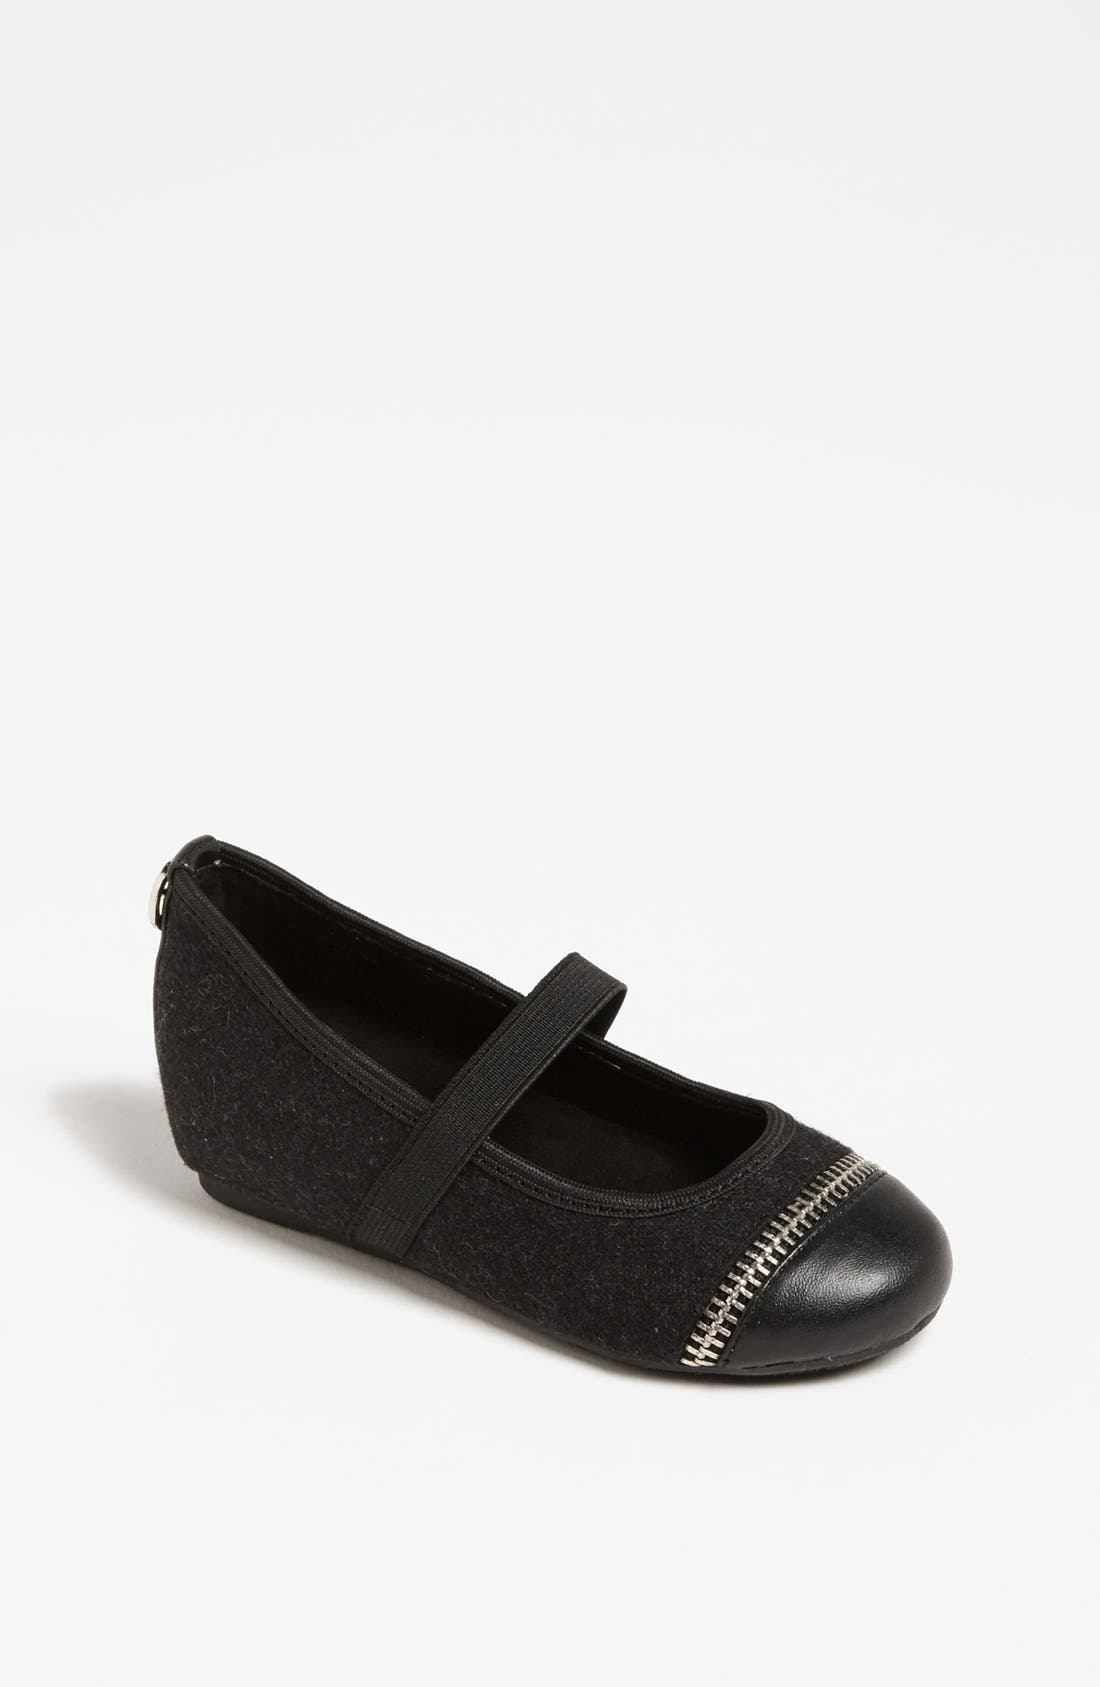 Alternate Image 1 Selected - MICHAEL Michael Kors 'Fay' Zipper Strap Flat (Toddler)